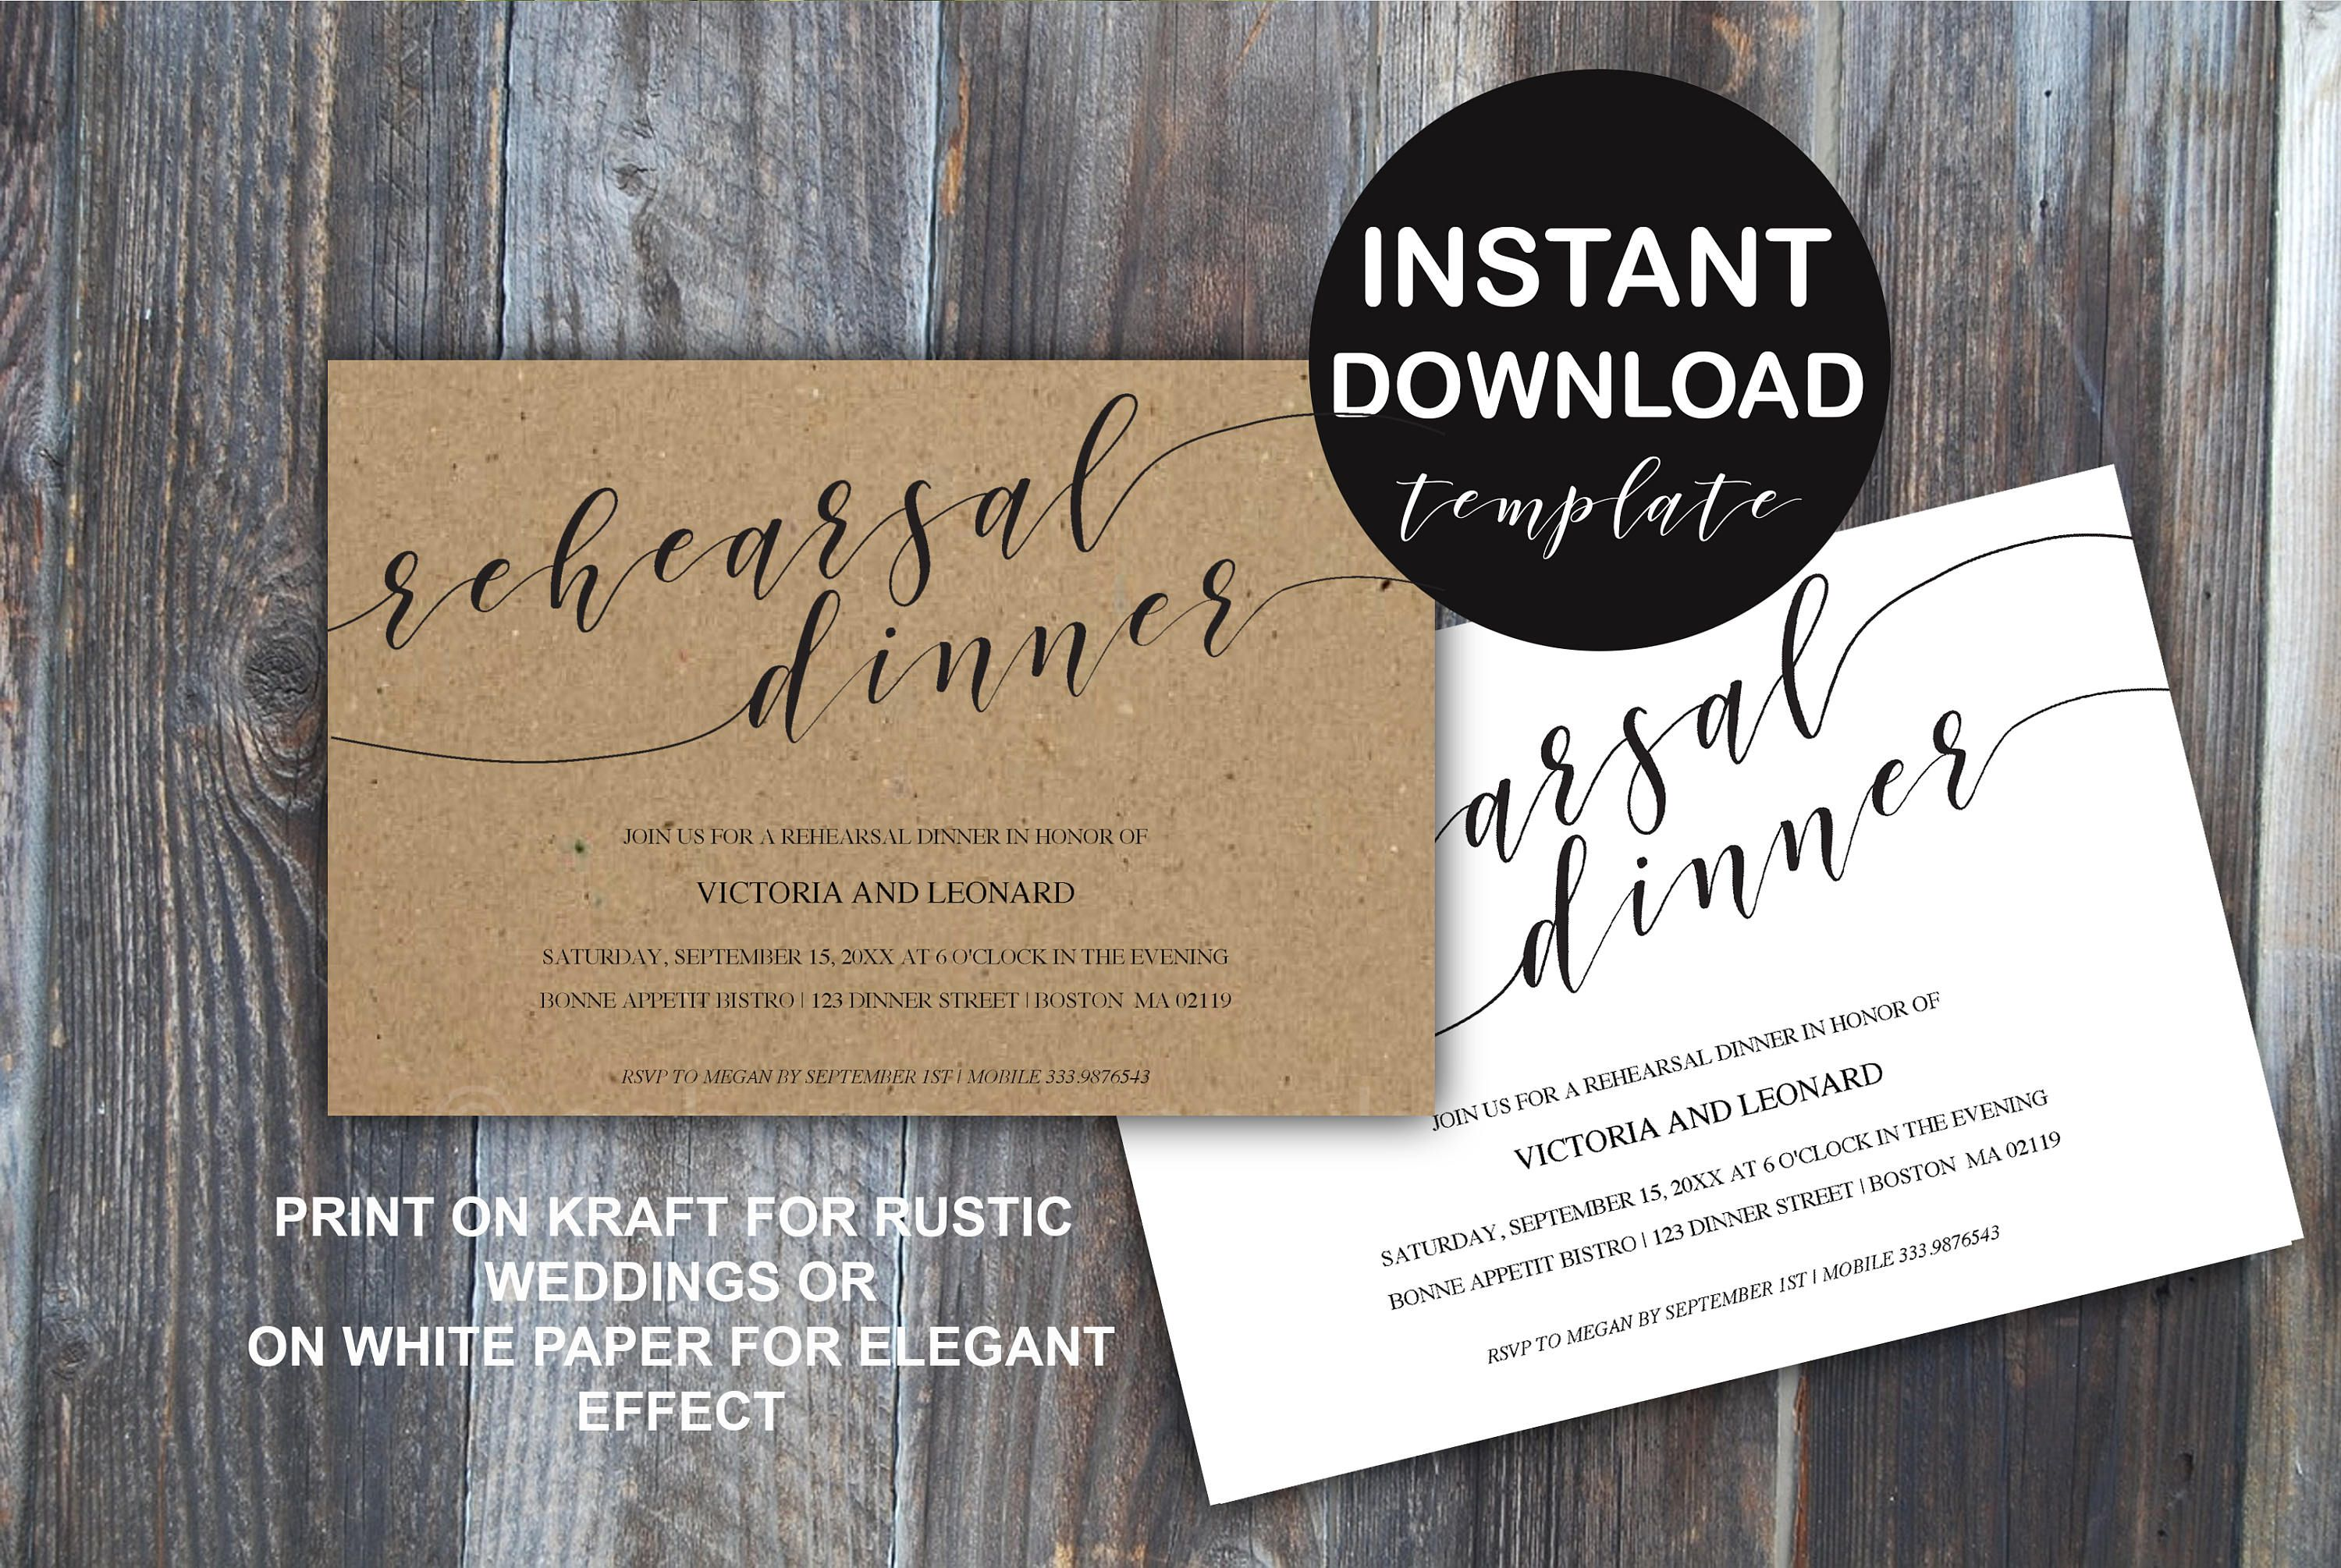 Rehearsal Dinner modern calligraphy invitation card